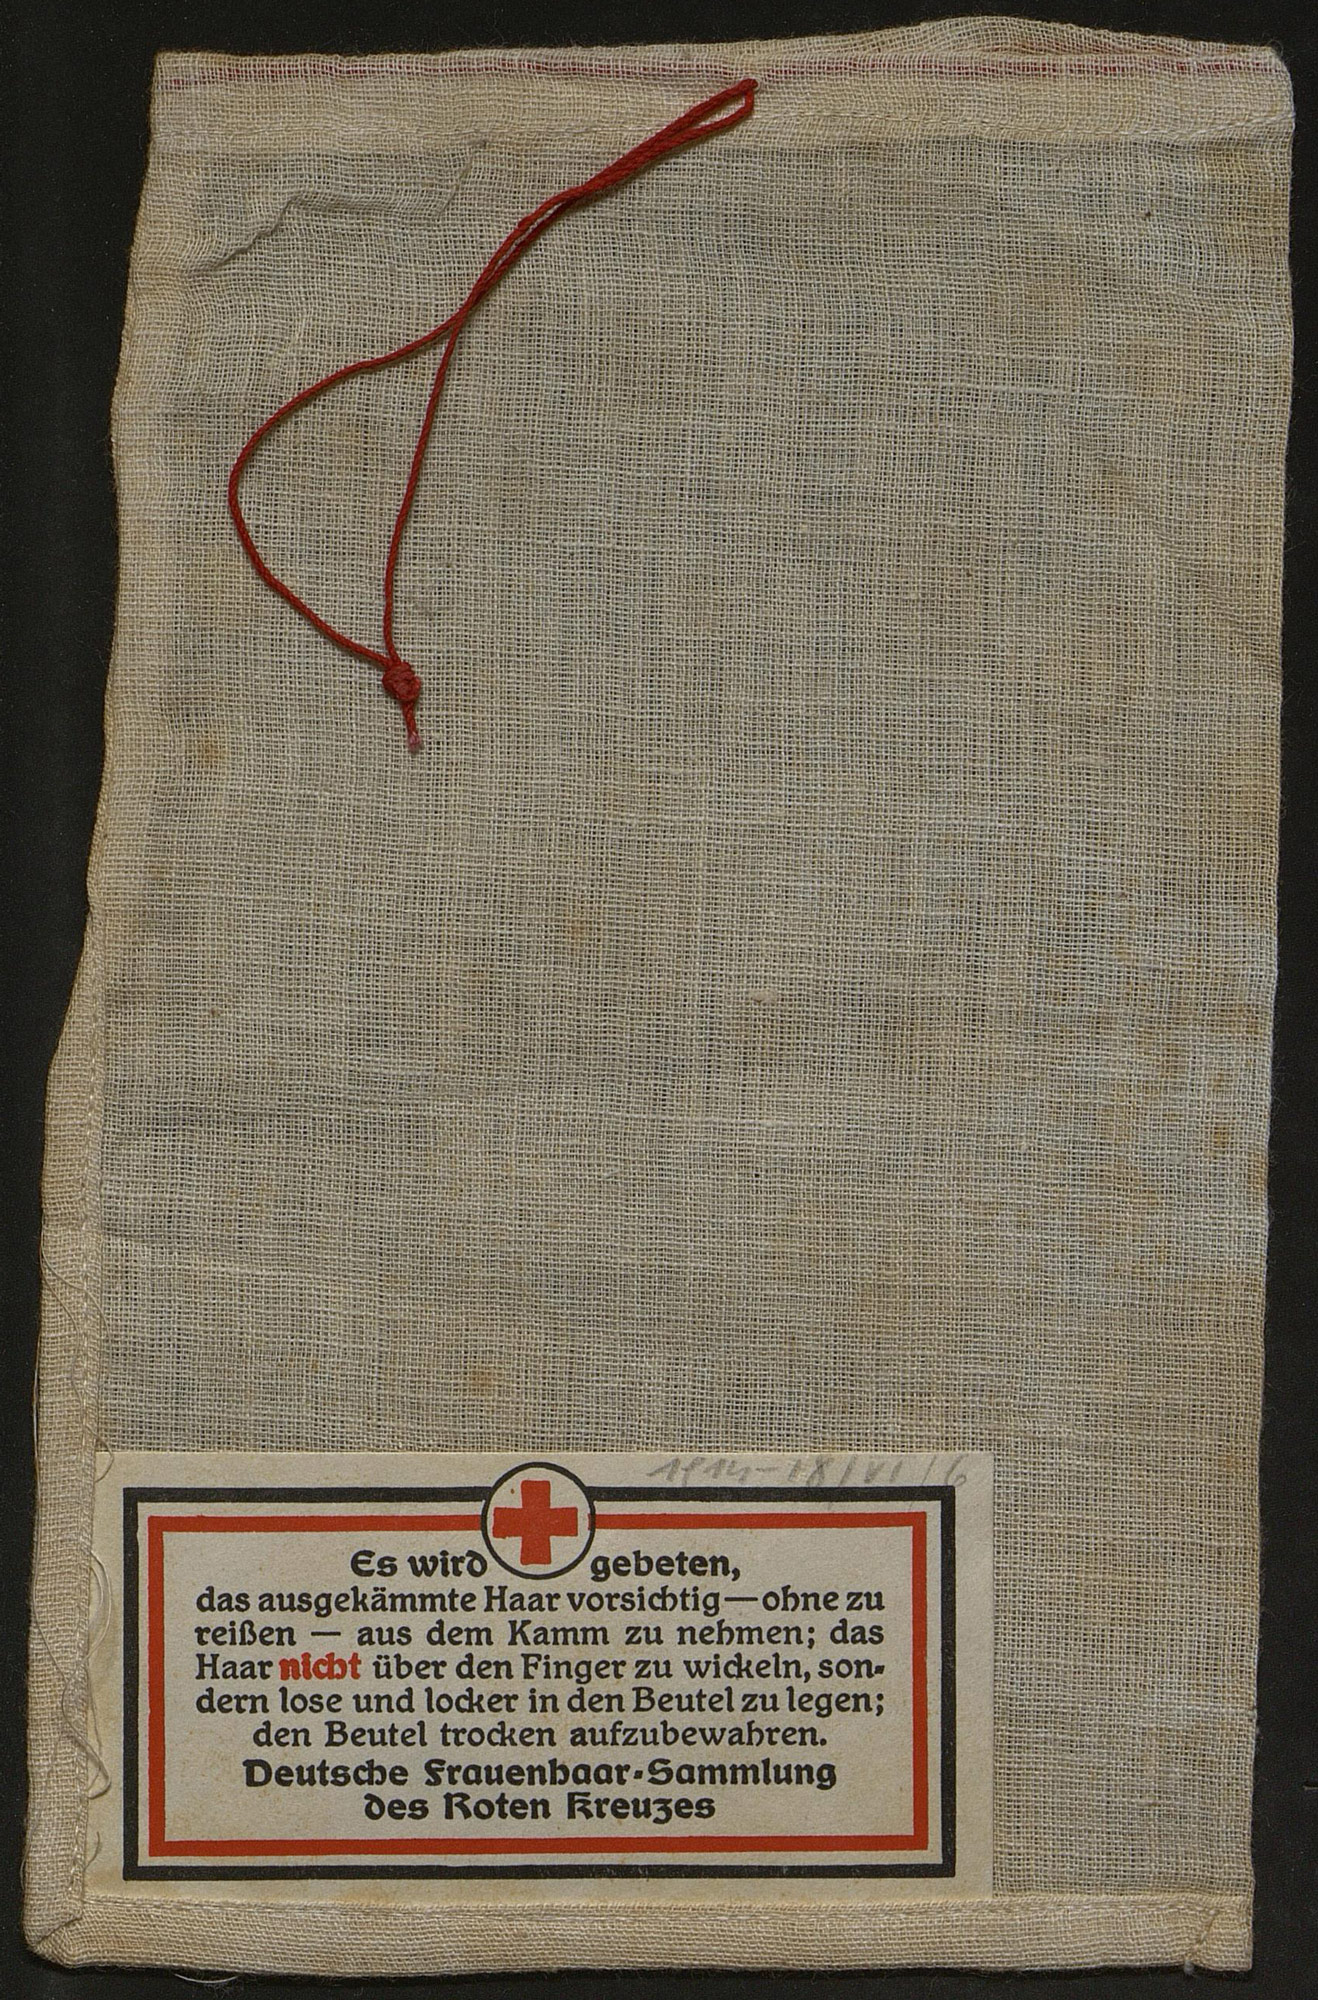 Example of a collection bag for women's hair from the Red Cross in Germany. At a time when raw materials were scarce, the hair was used to produce transmission belts.